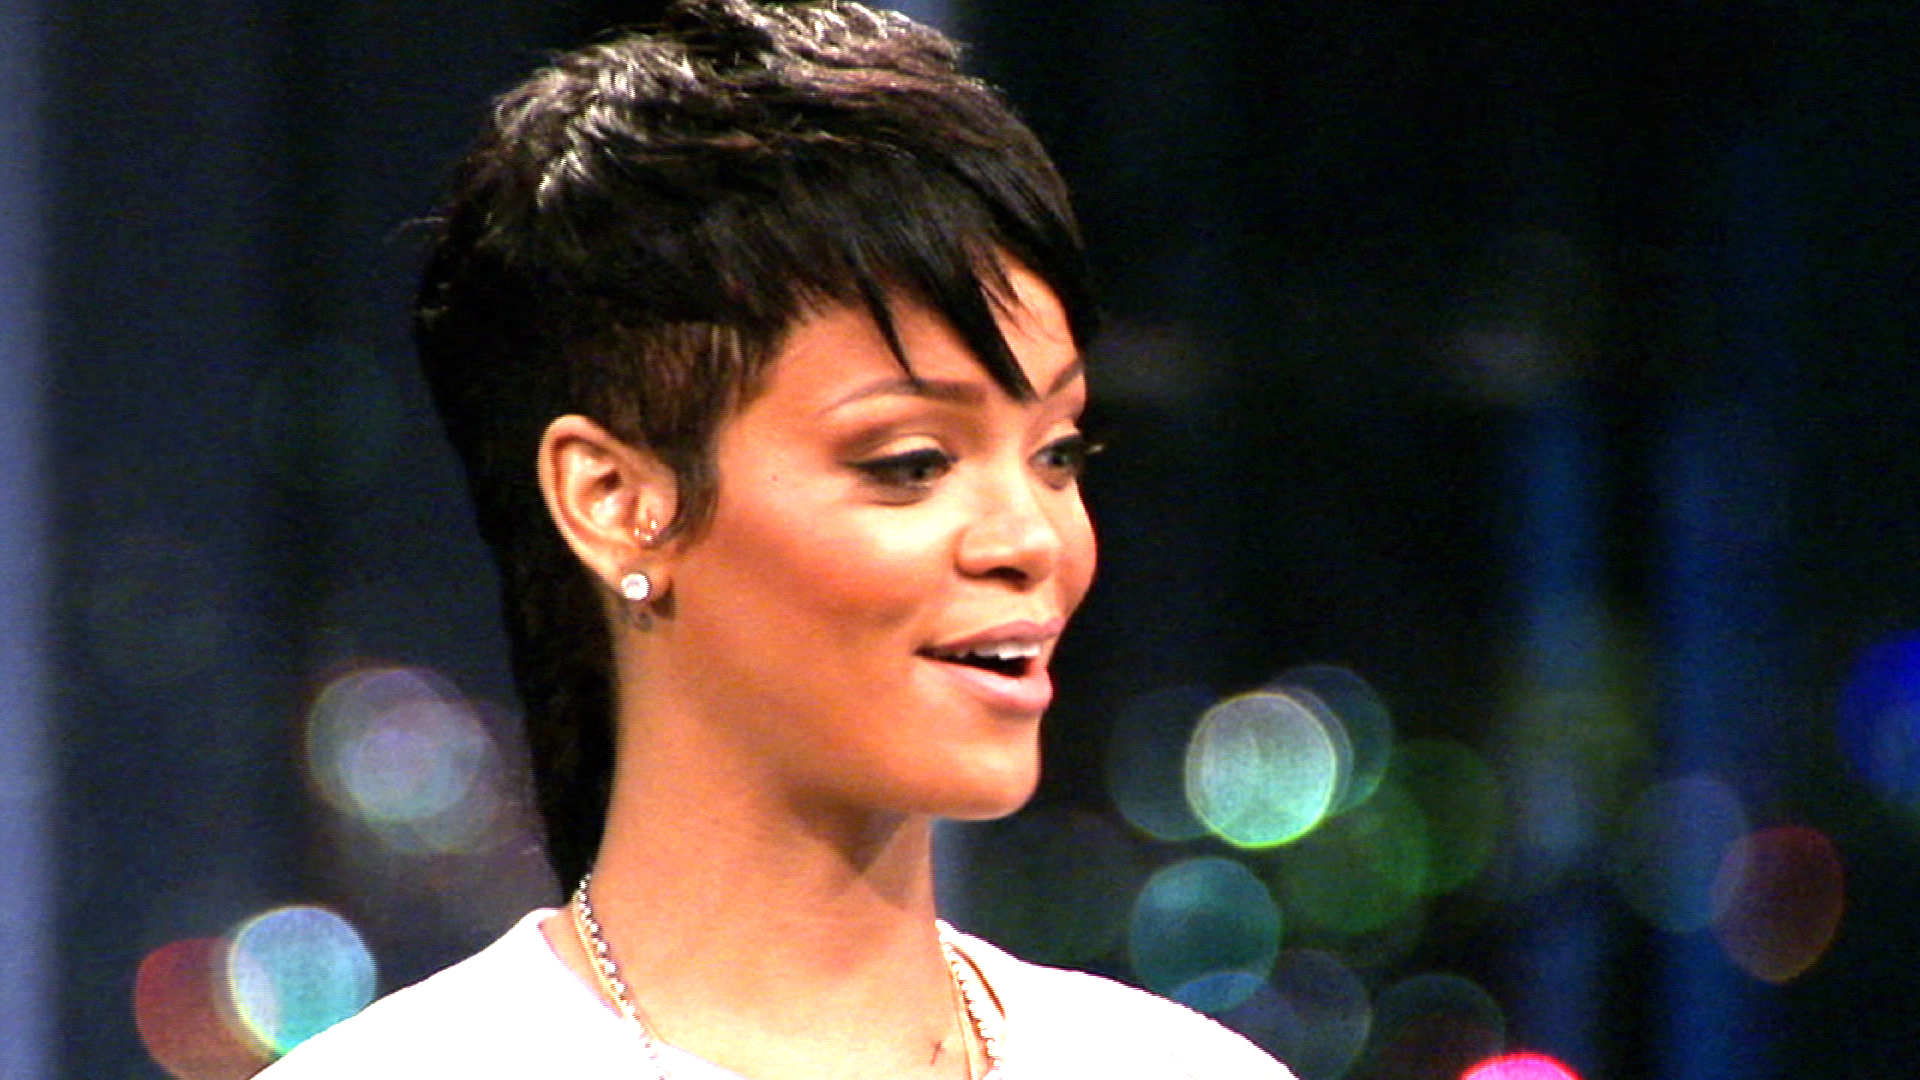 Who Will Robyn Rihanna Choose?